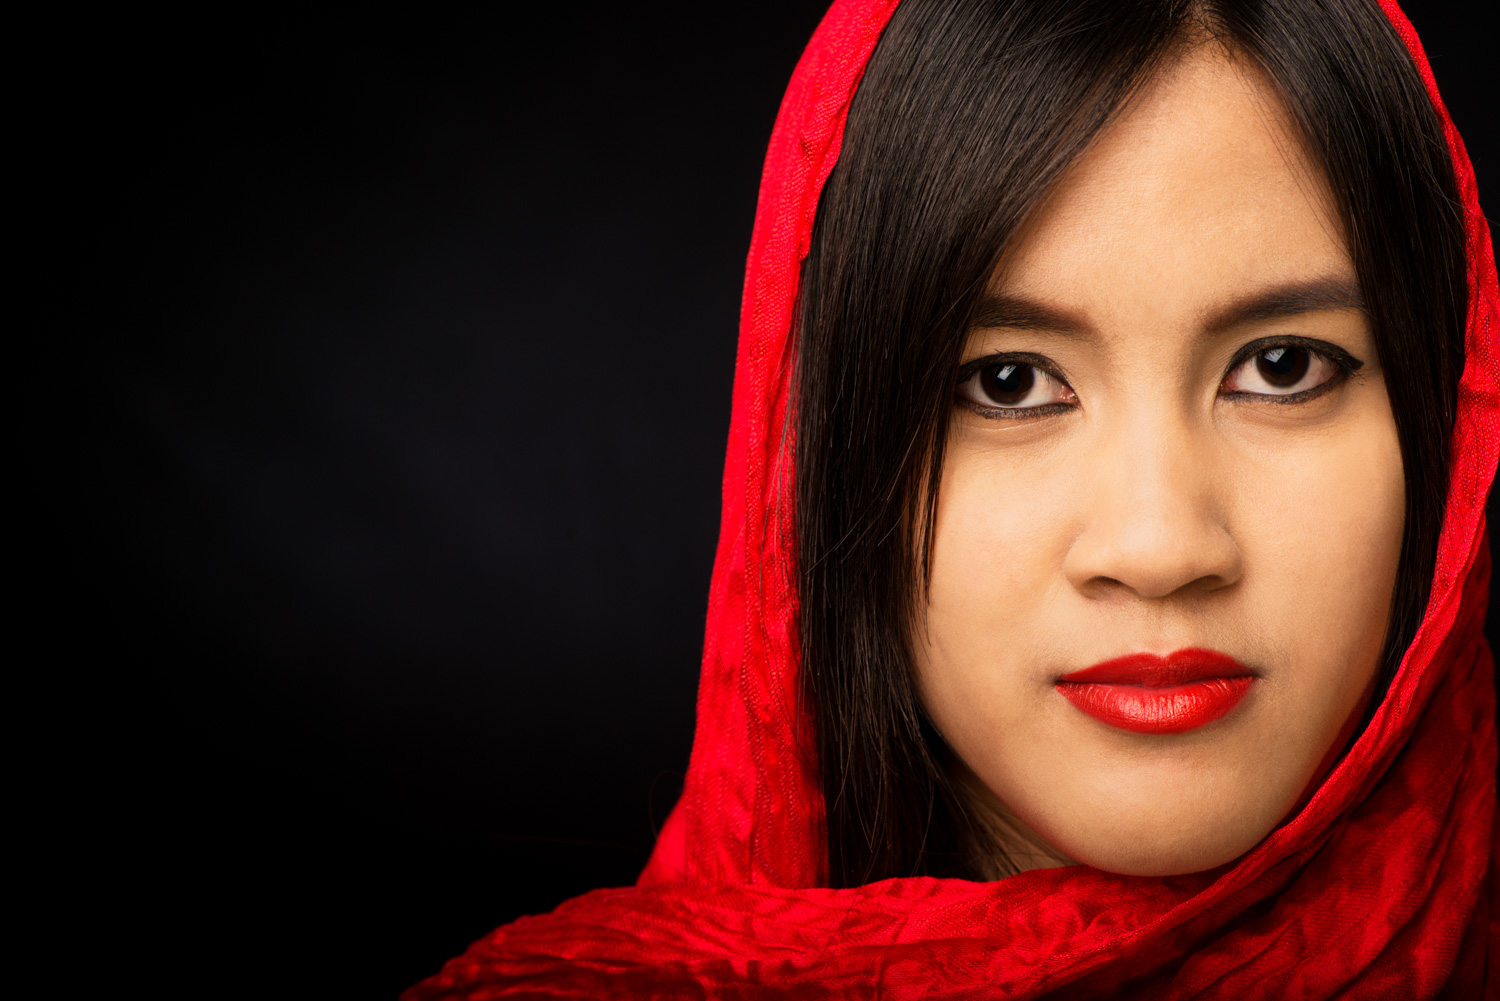 Red Head Scarf 15 Common Portrait Mistakes to Avoid